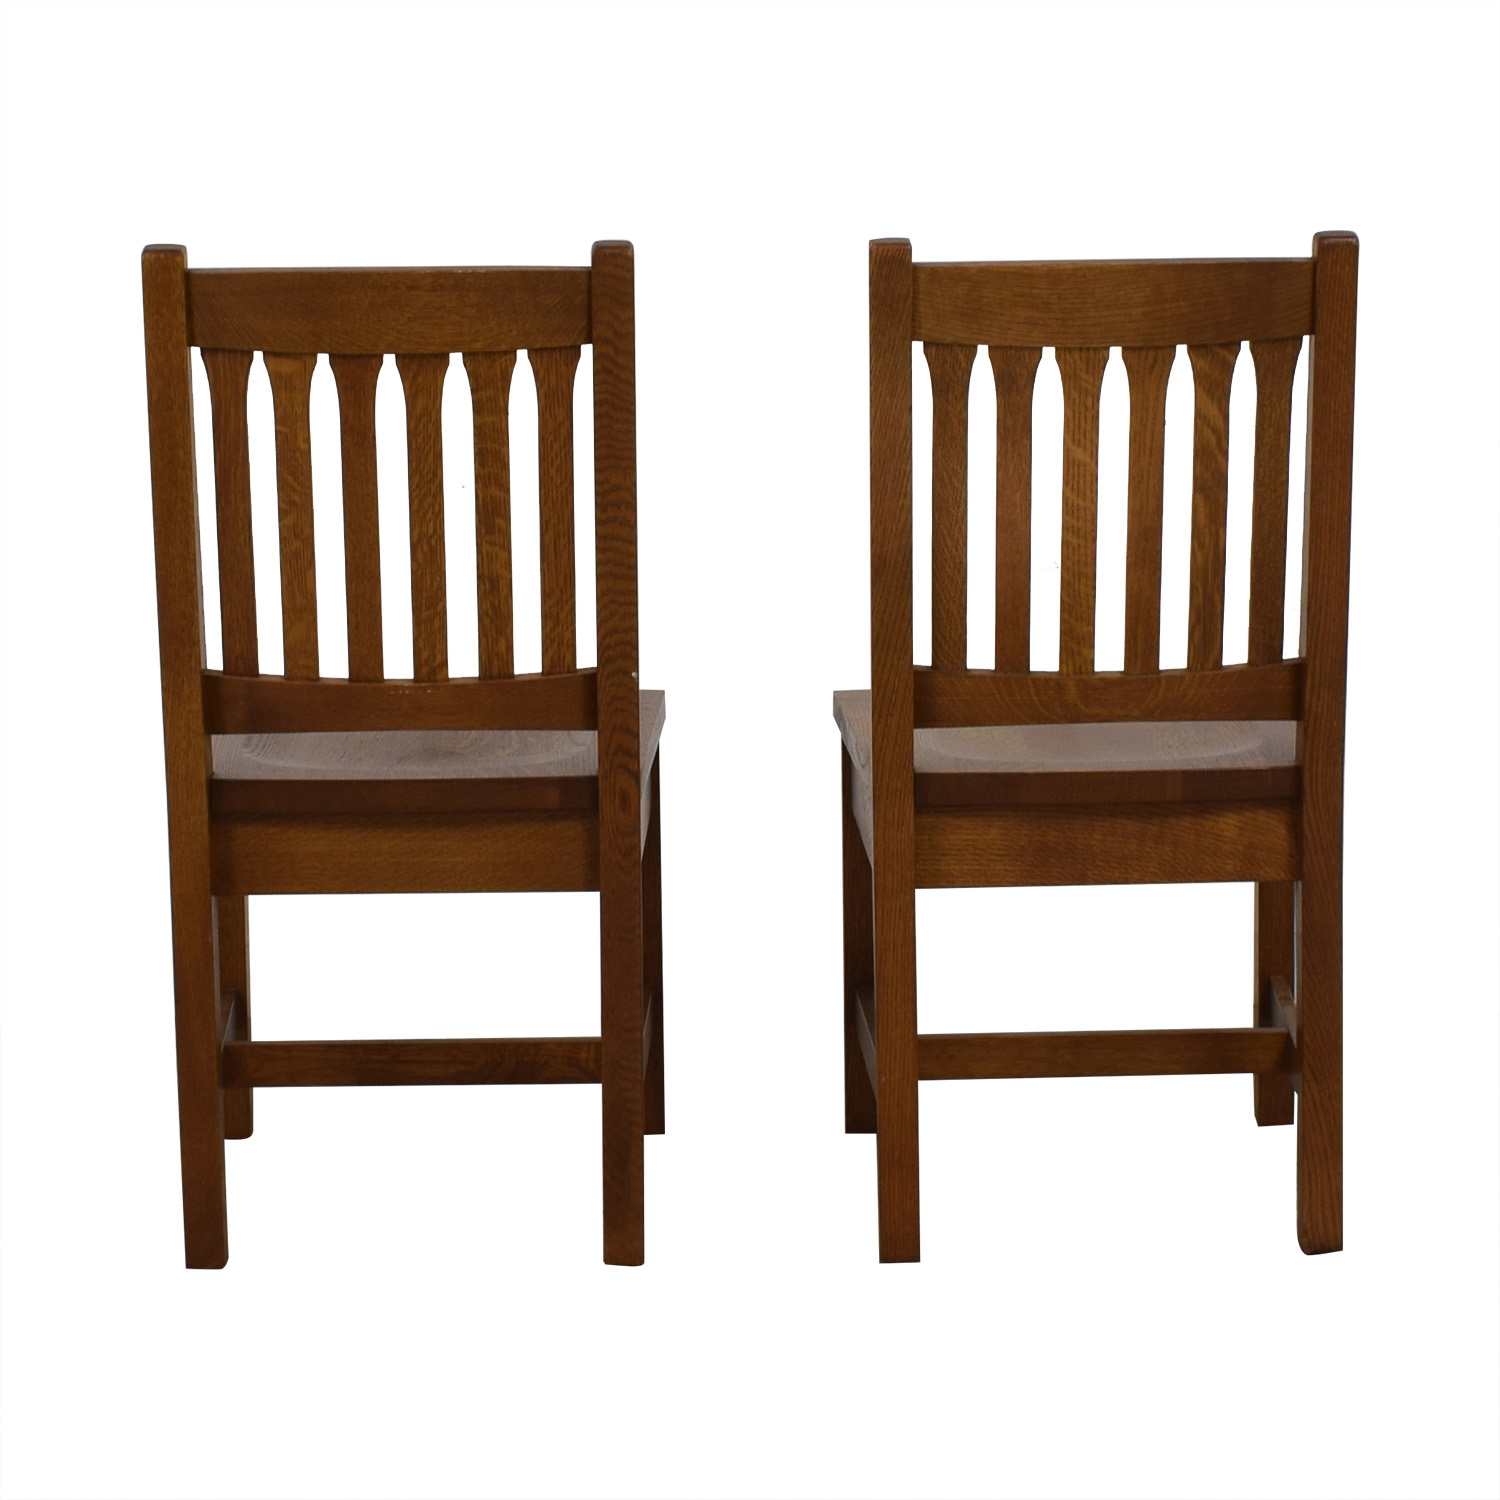 Stickley Audi & Co Stickley Audi & Co Handcrafted Wooden Chairs on sale